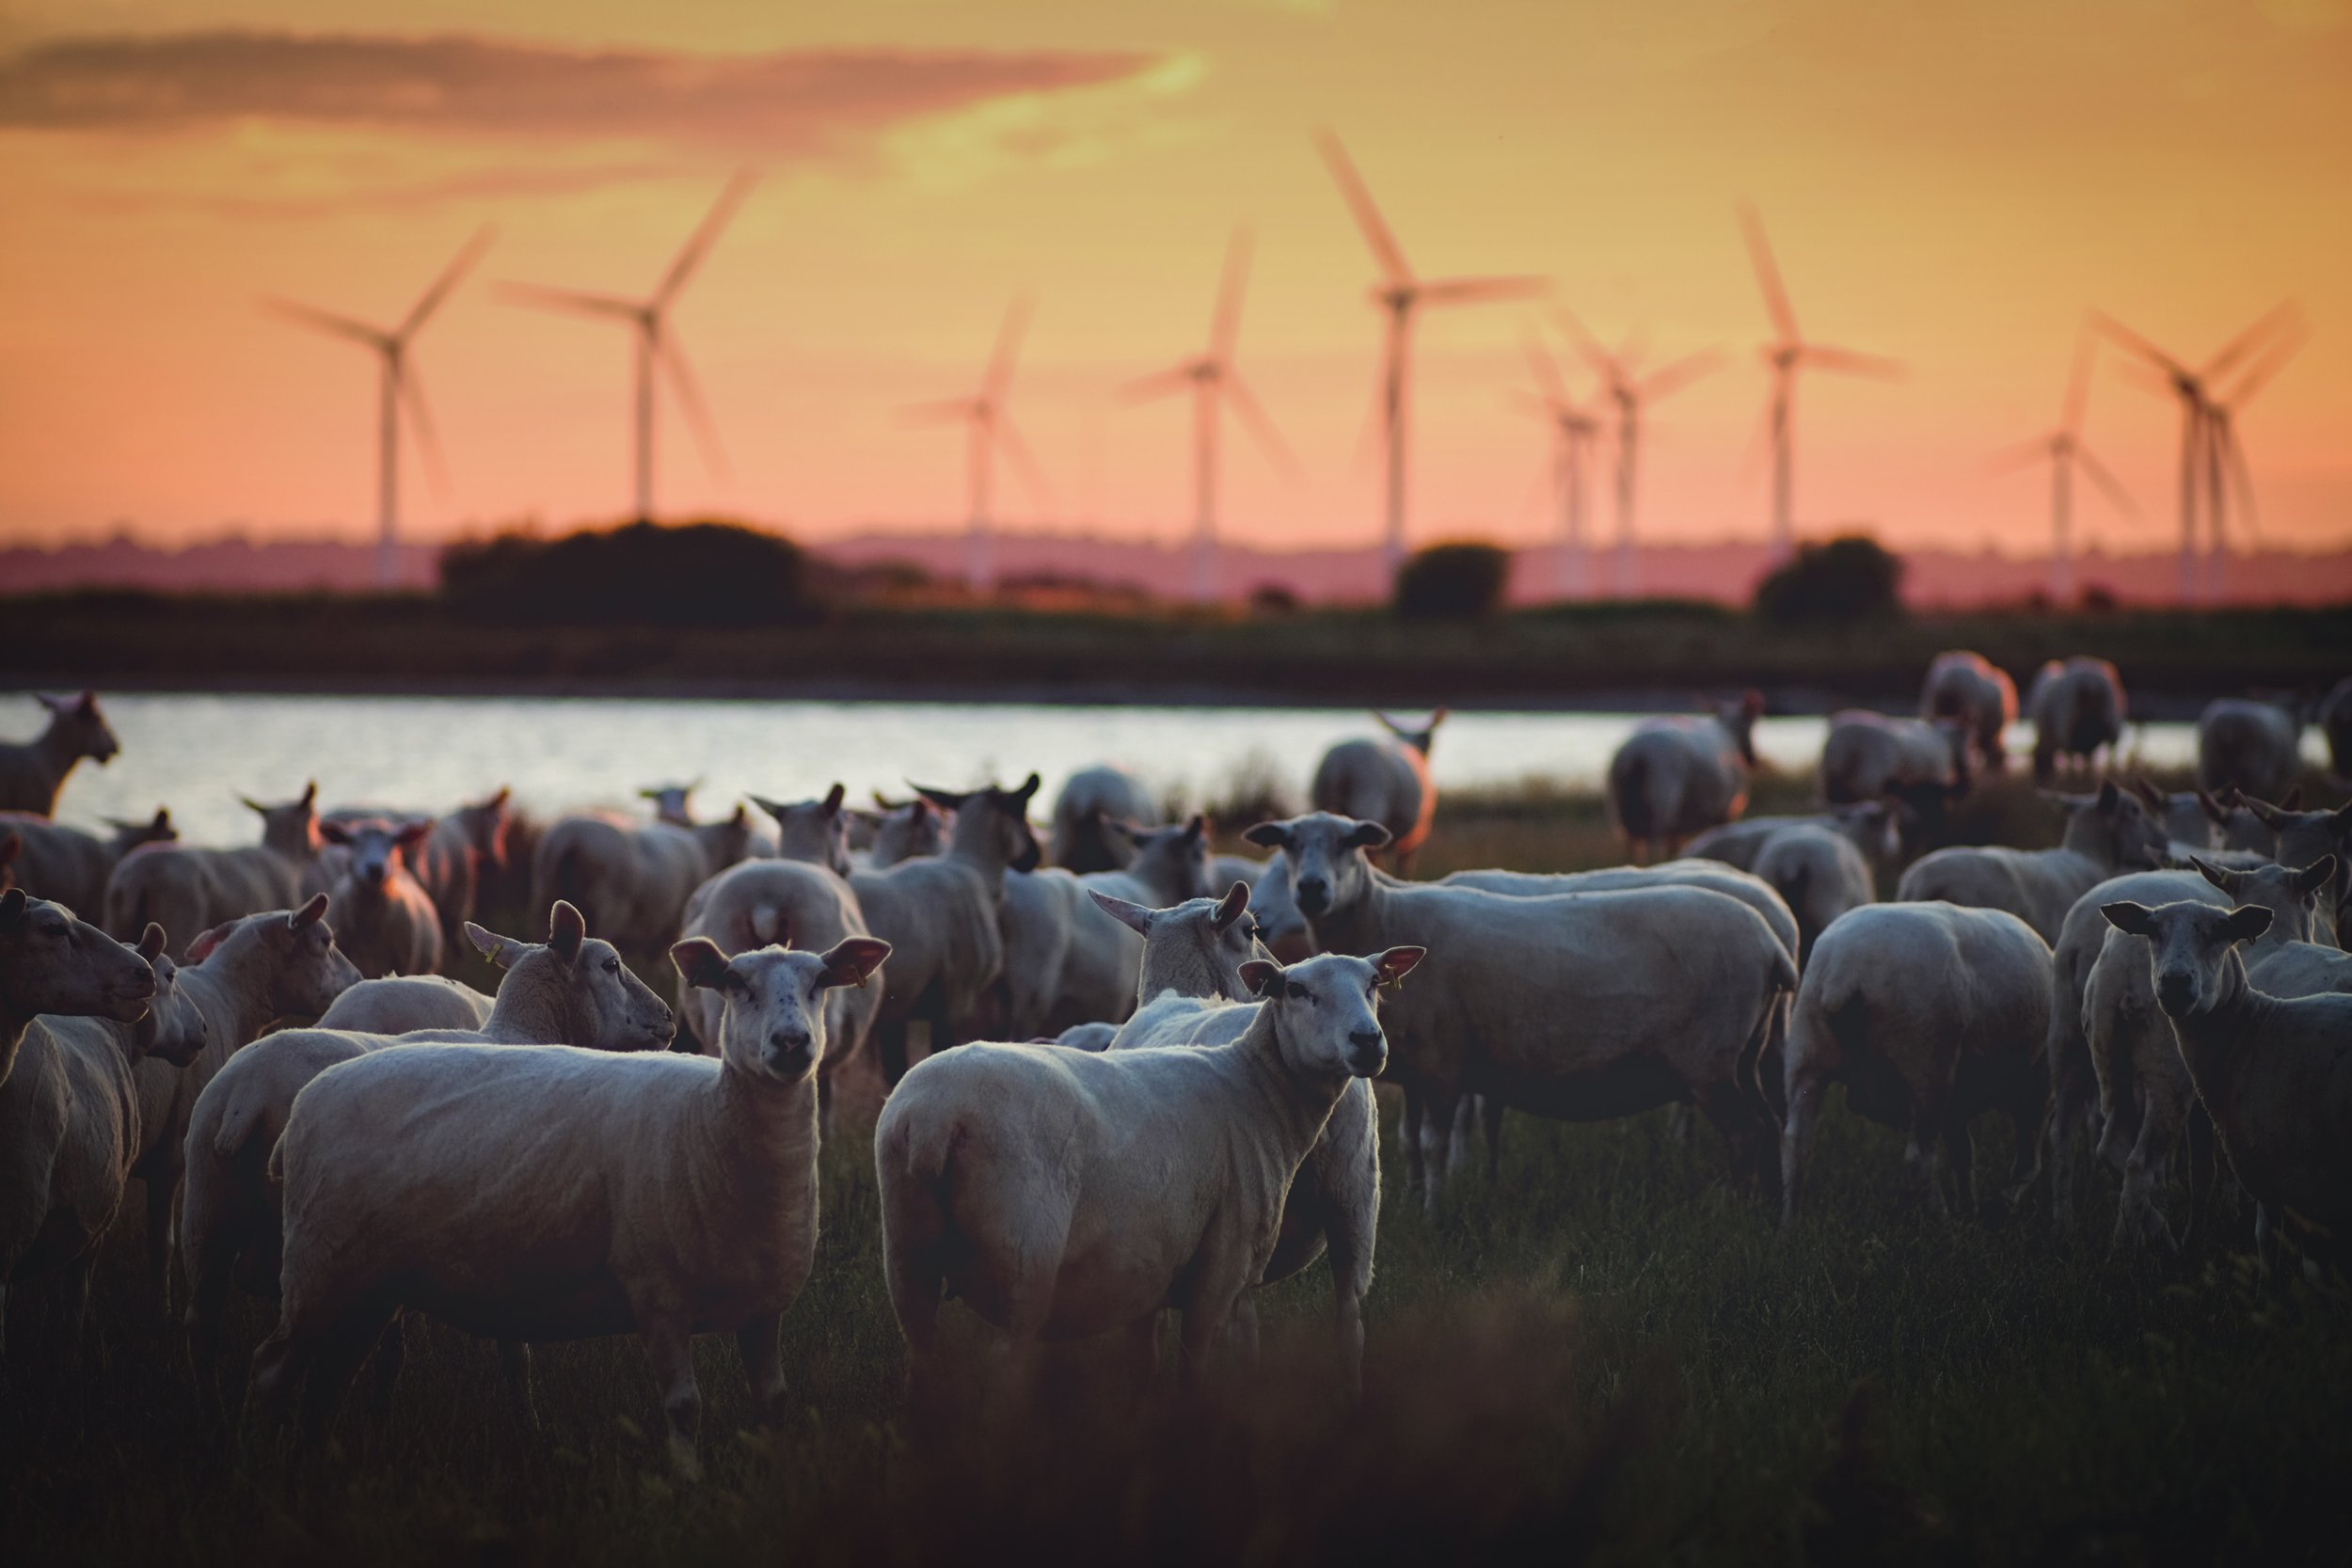 Germany can power their country for a year solely from renewable energy sources.